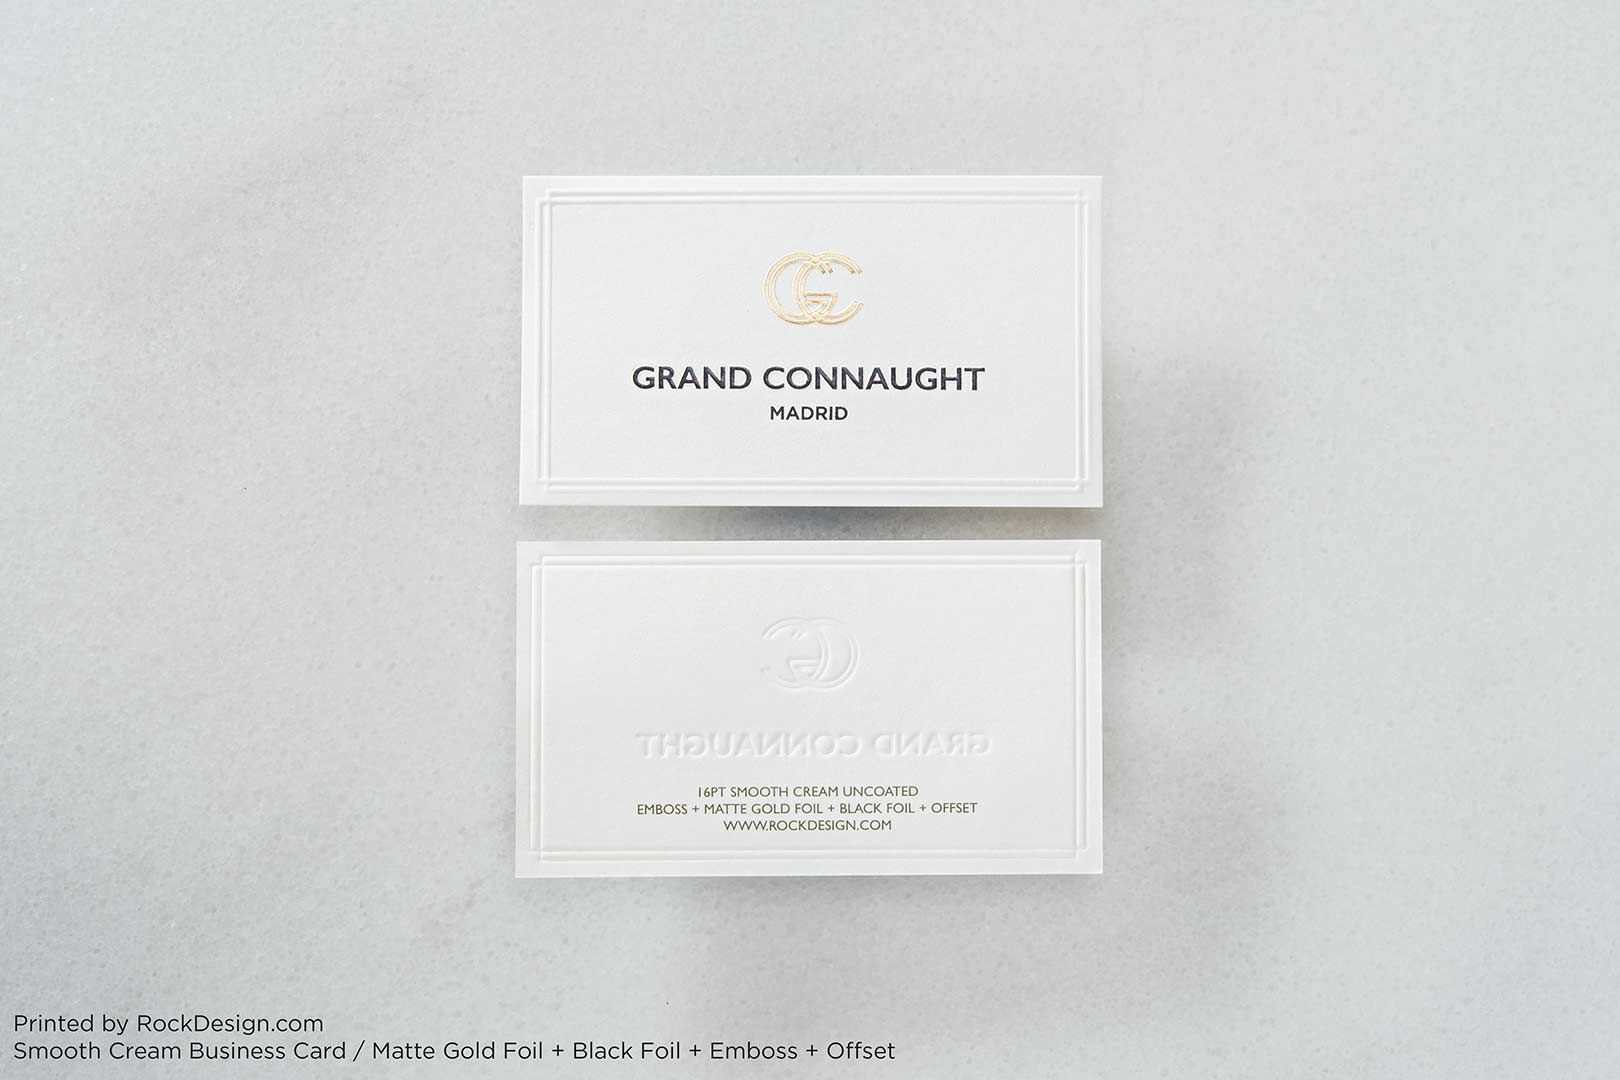 Natural cream uncoated business cards rockdesign luxury business natural cream uncoated business cards rockdesign luxury business card printing business cards pinterest business cards luxury business cards and magicingreecefo Gallery